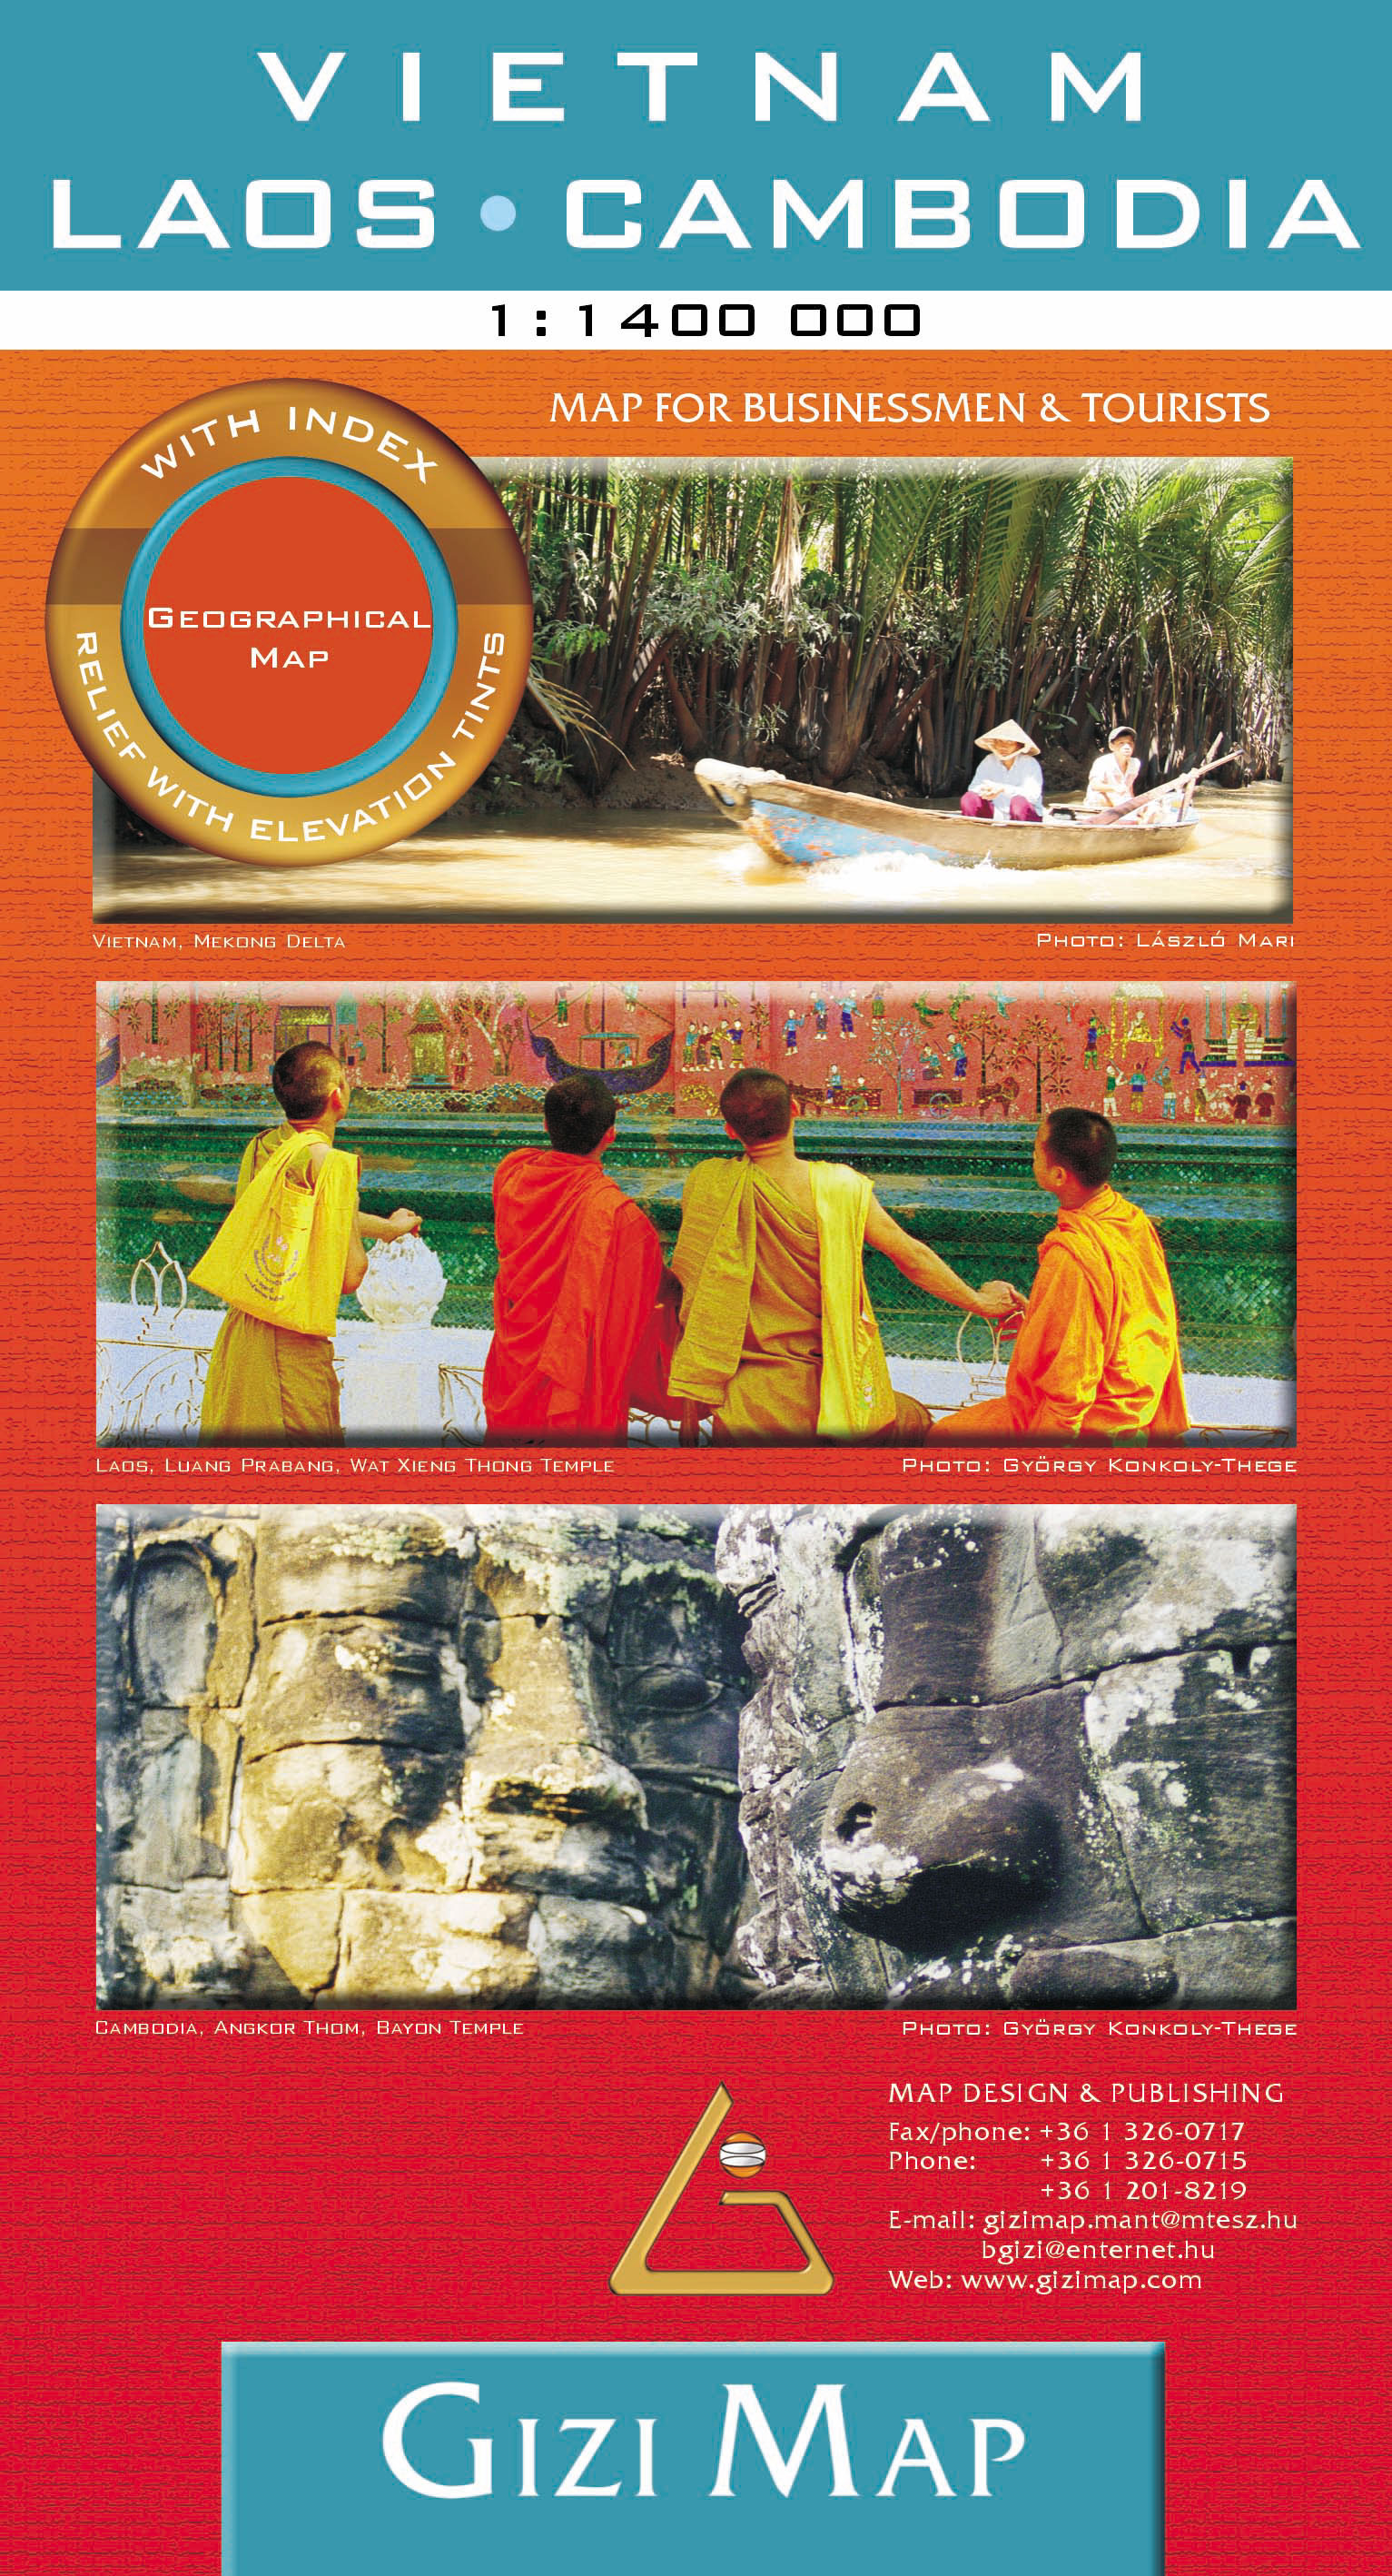 Vietnam, Laos, Cambodia road map with geographical colouring and tourist info. Fully indexed